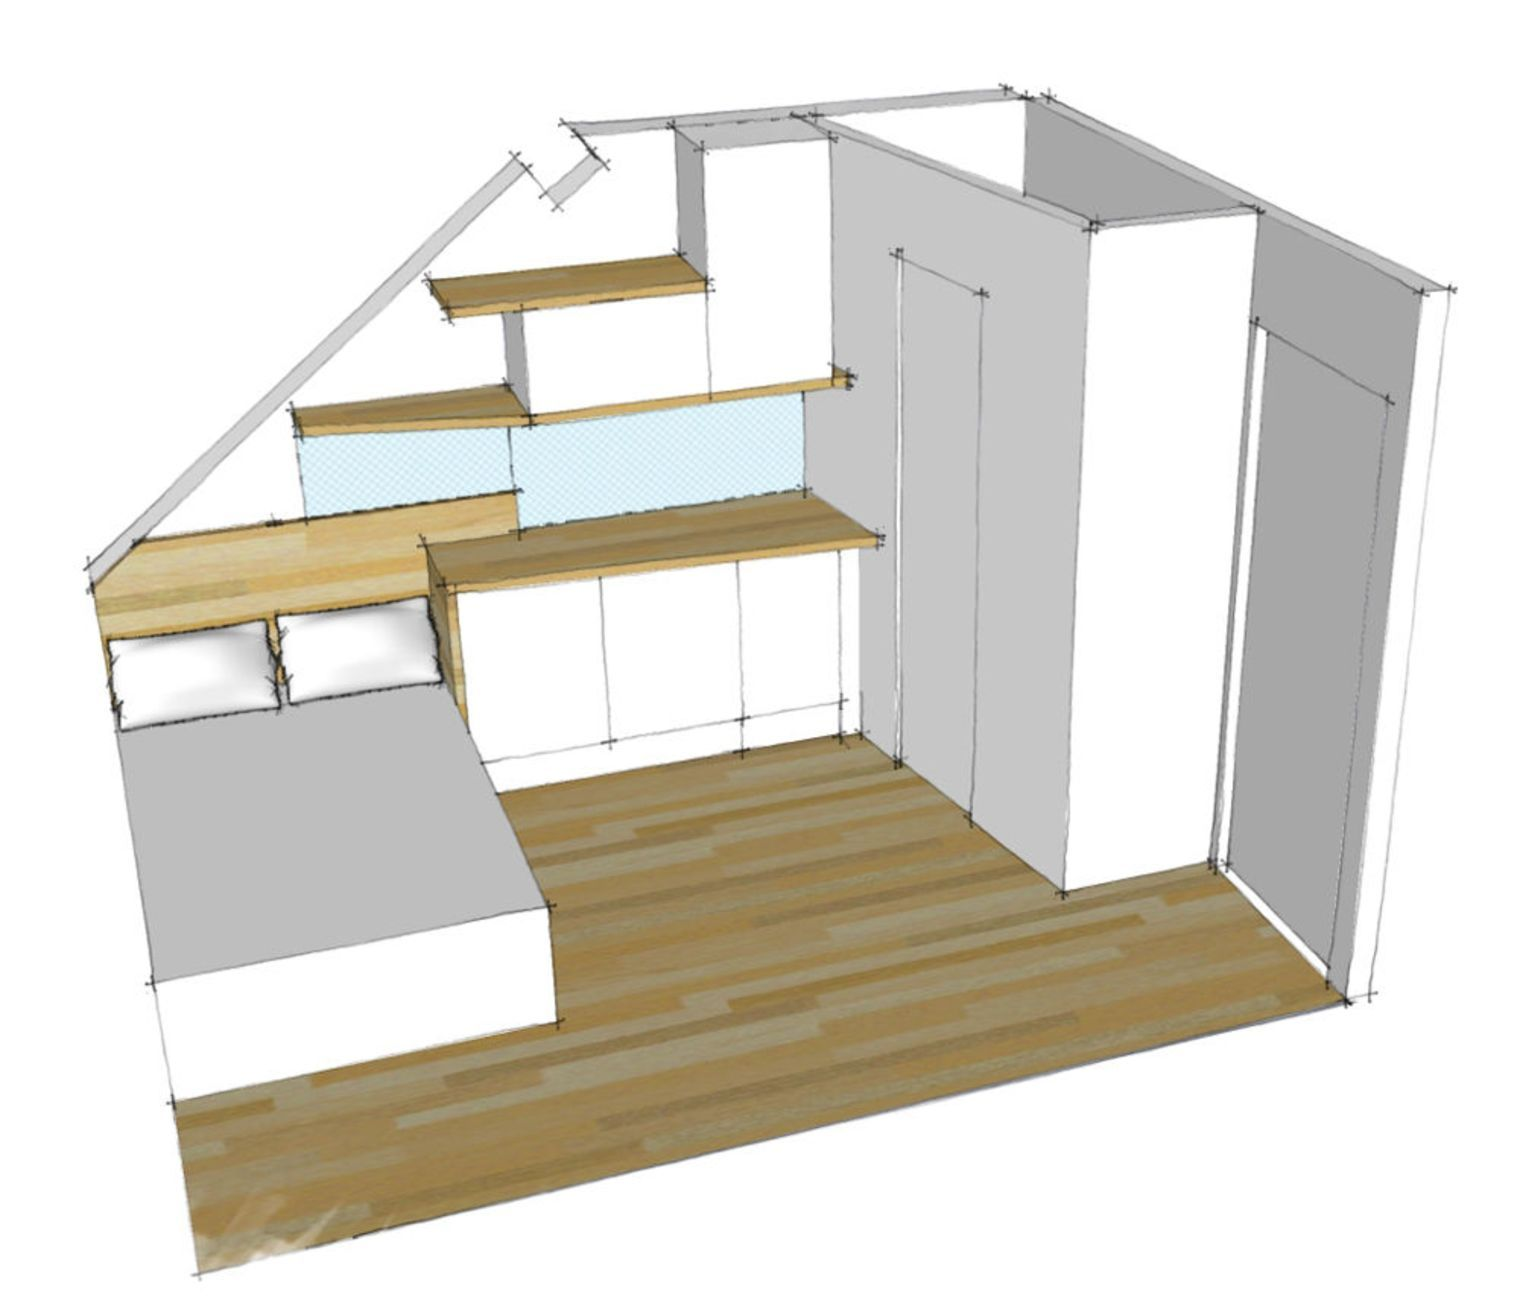 Aménagement studio Paris : 10m2 fonctionnels | Studio, Space ...